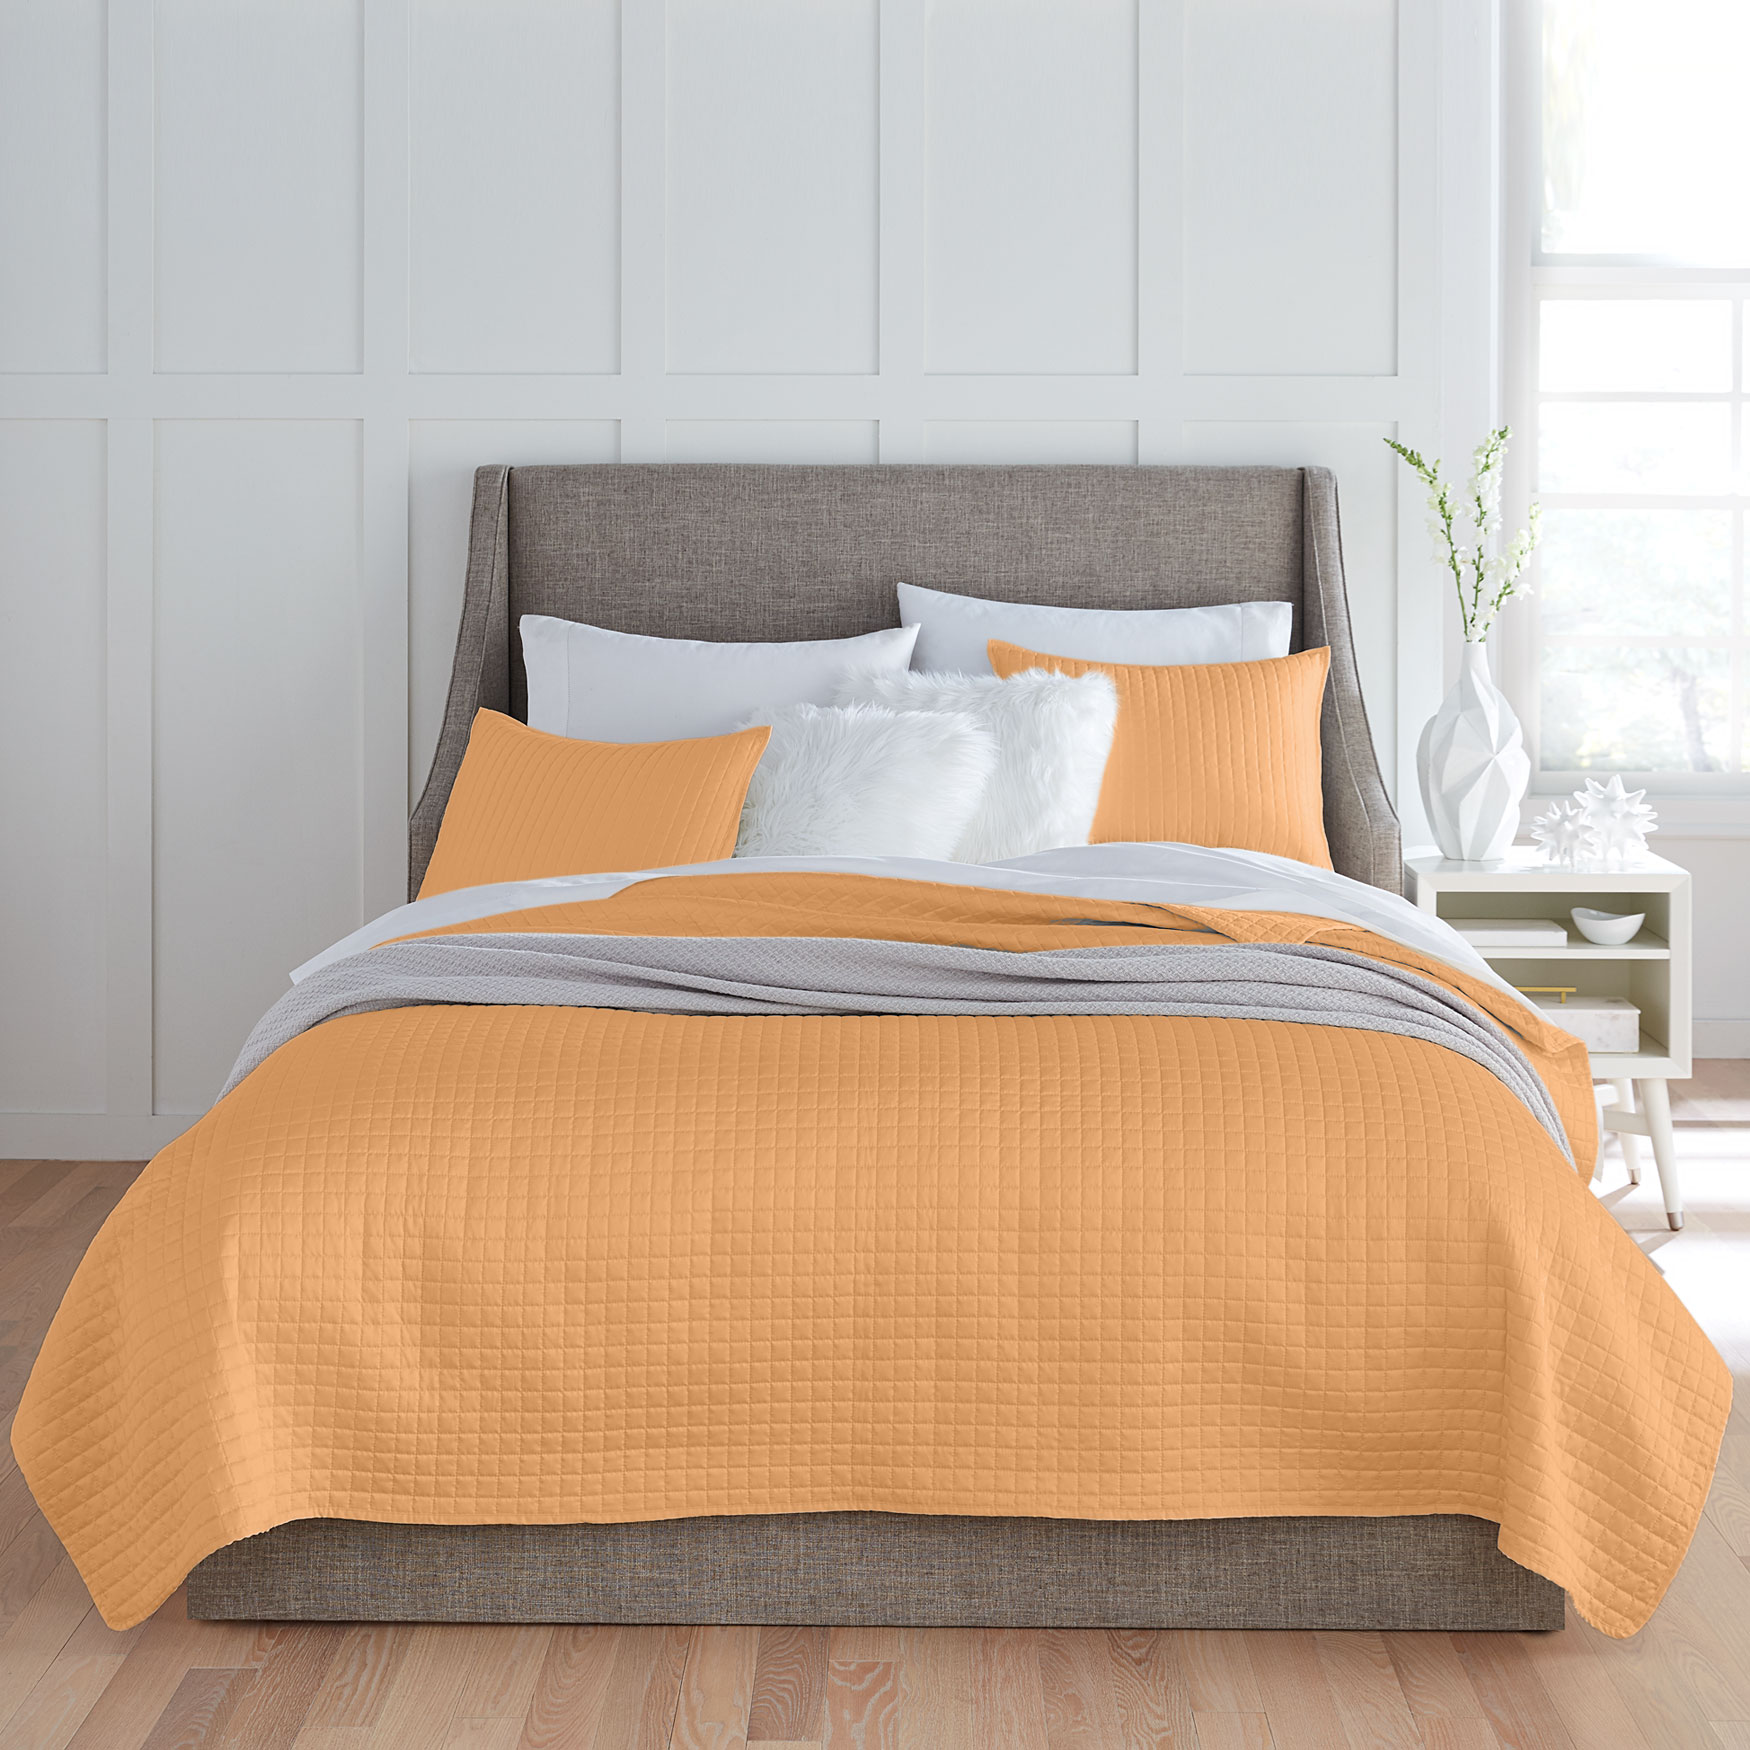 Billie Matte Satin Quilt,